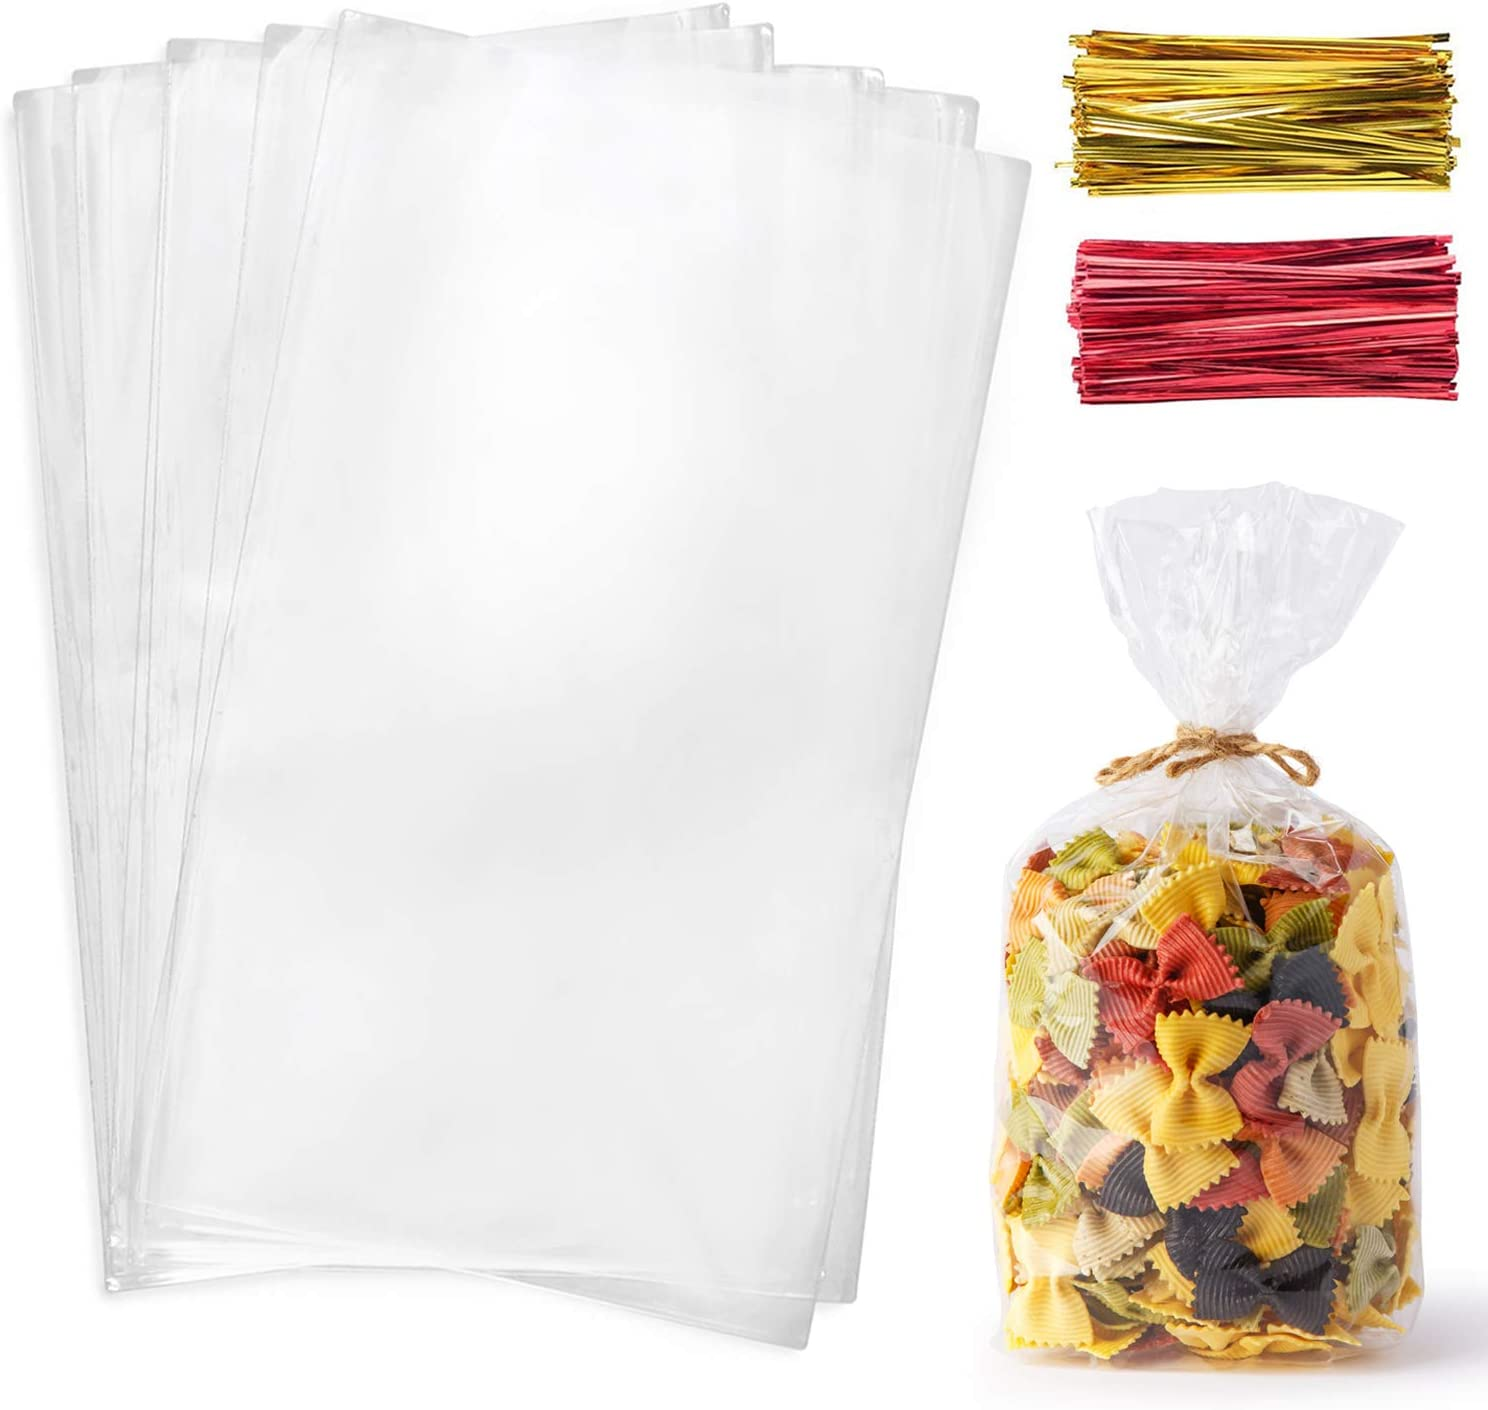 Cello Cellophane Treat Bags,200 PCS 7x13 Inches Clear Pastic Gift Bags with Twist Ties,Party Favor Bags